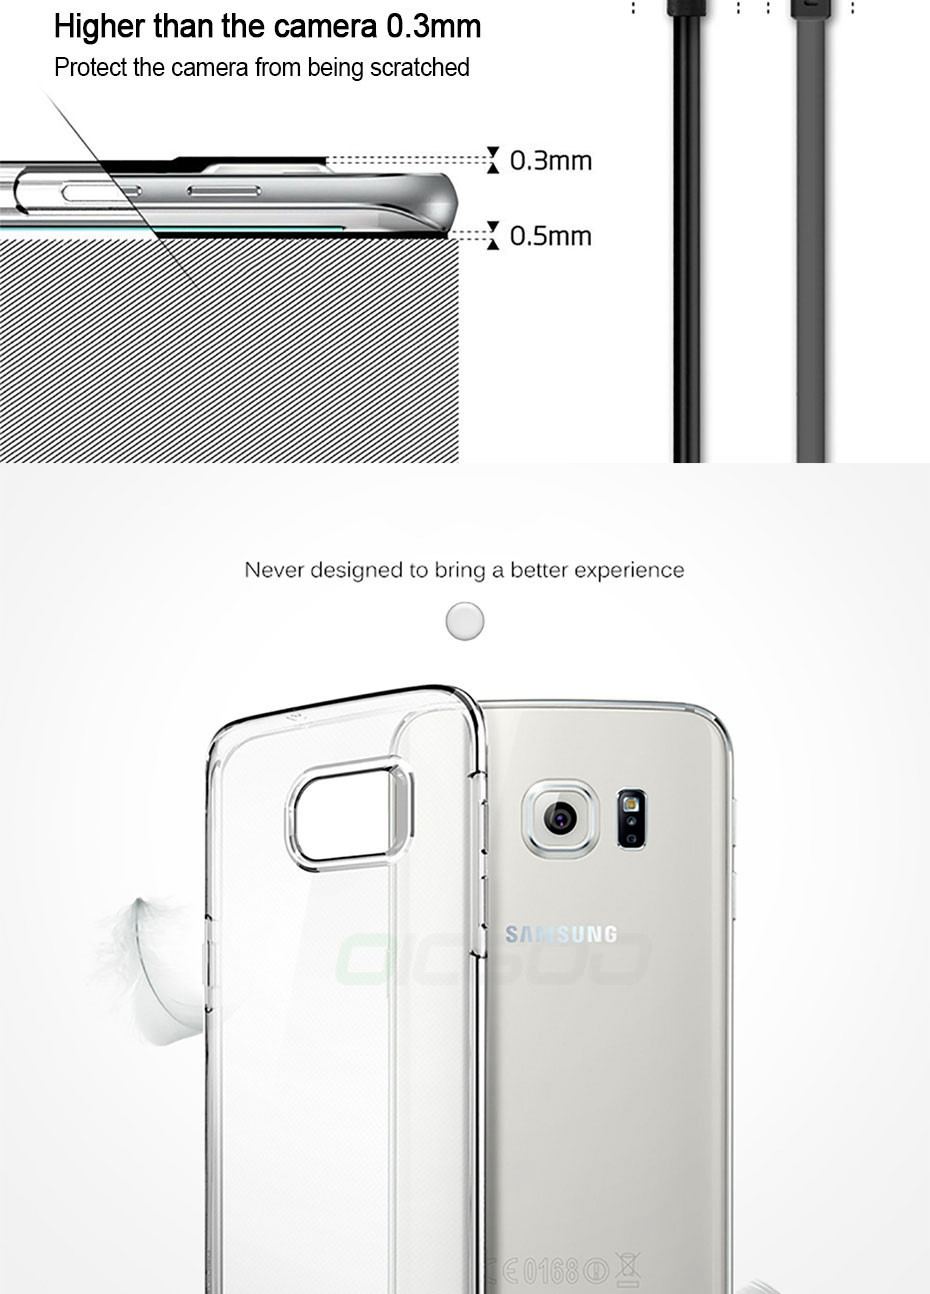 Bakeey™ Ultra Thin Transparent Soft TPU Case for Samsung Galaxy S6 Edge